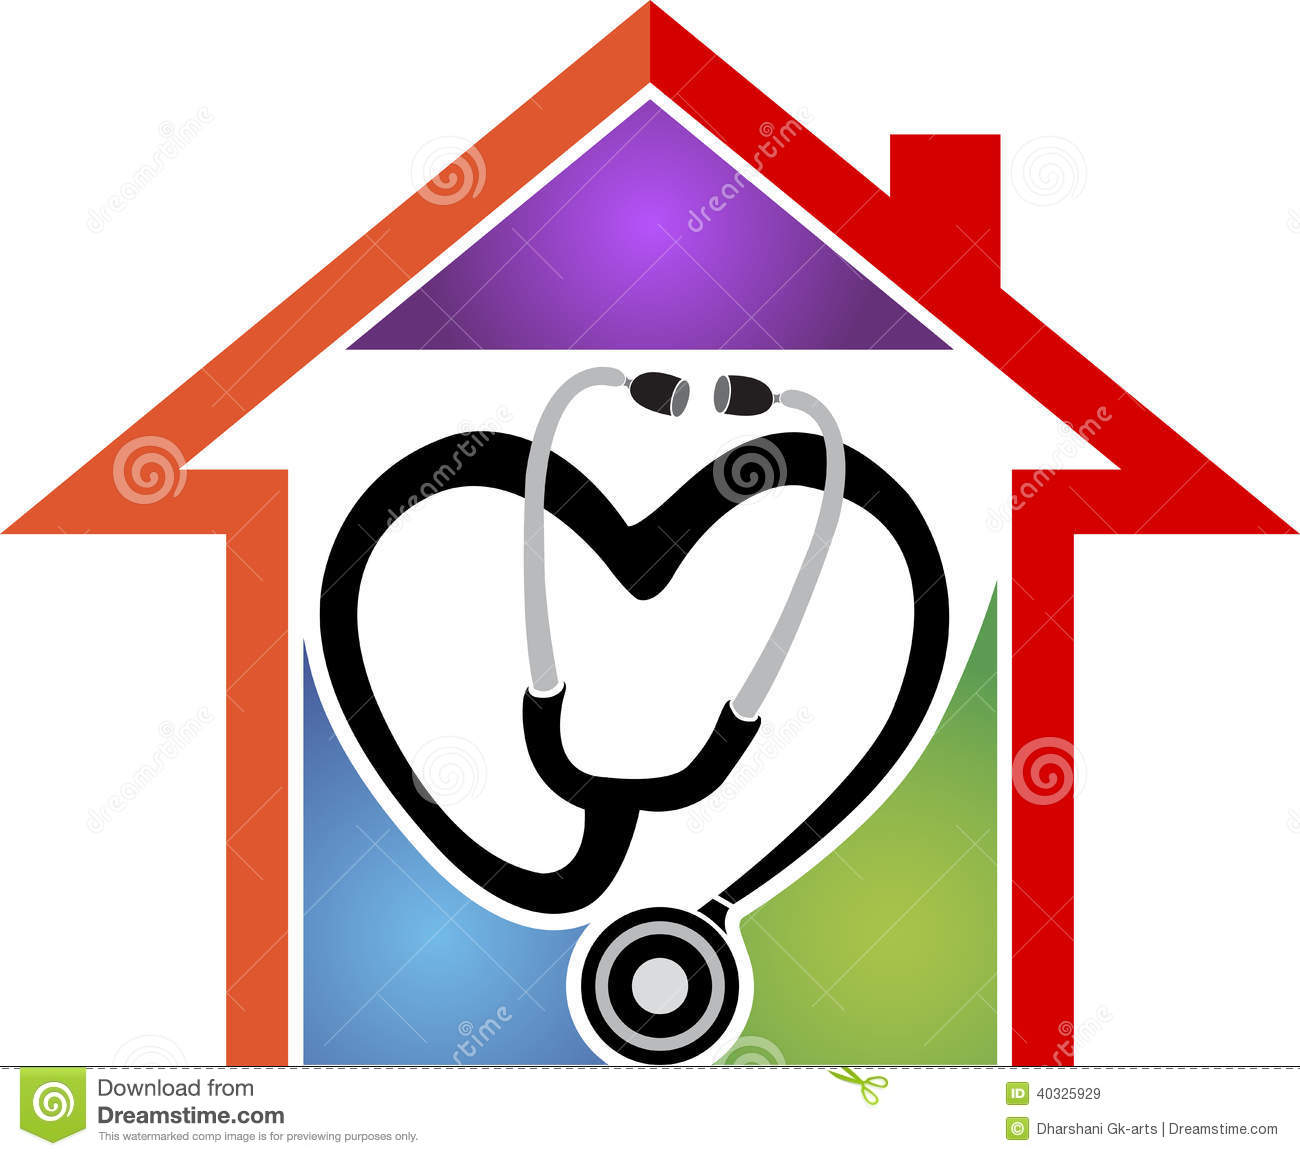 Caring clipart home. Health care free download